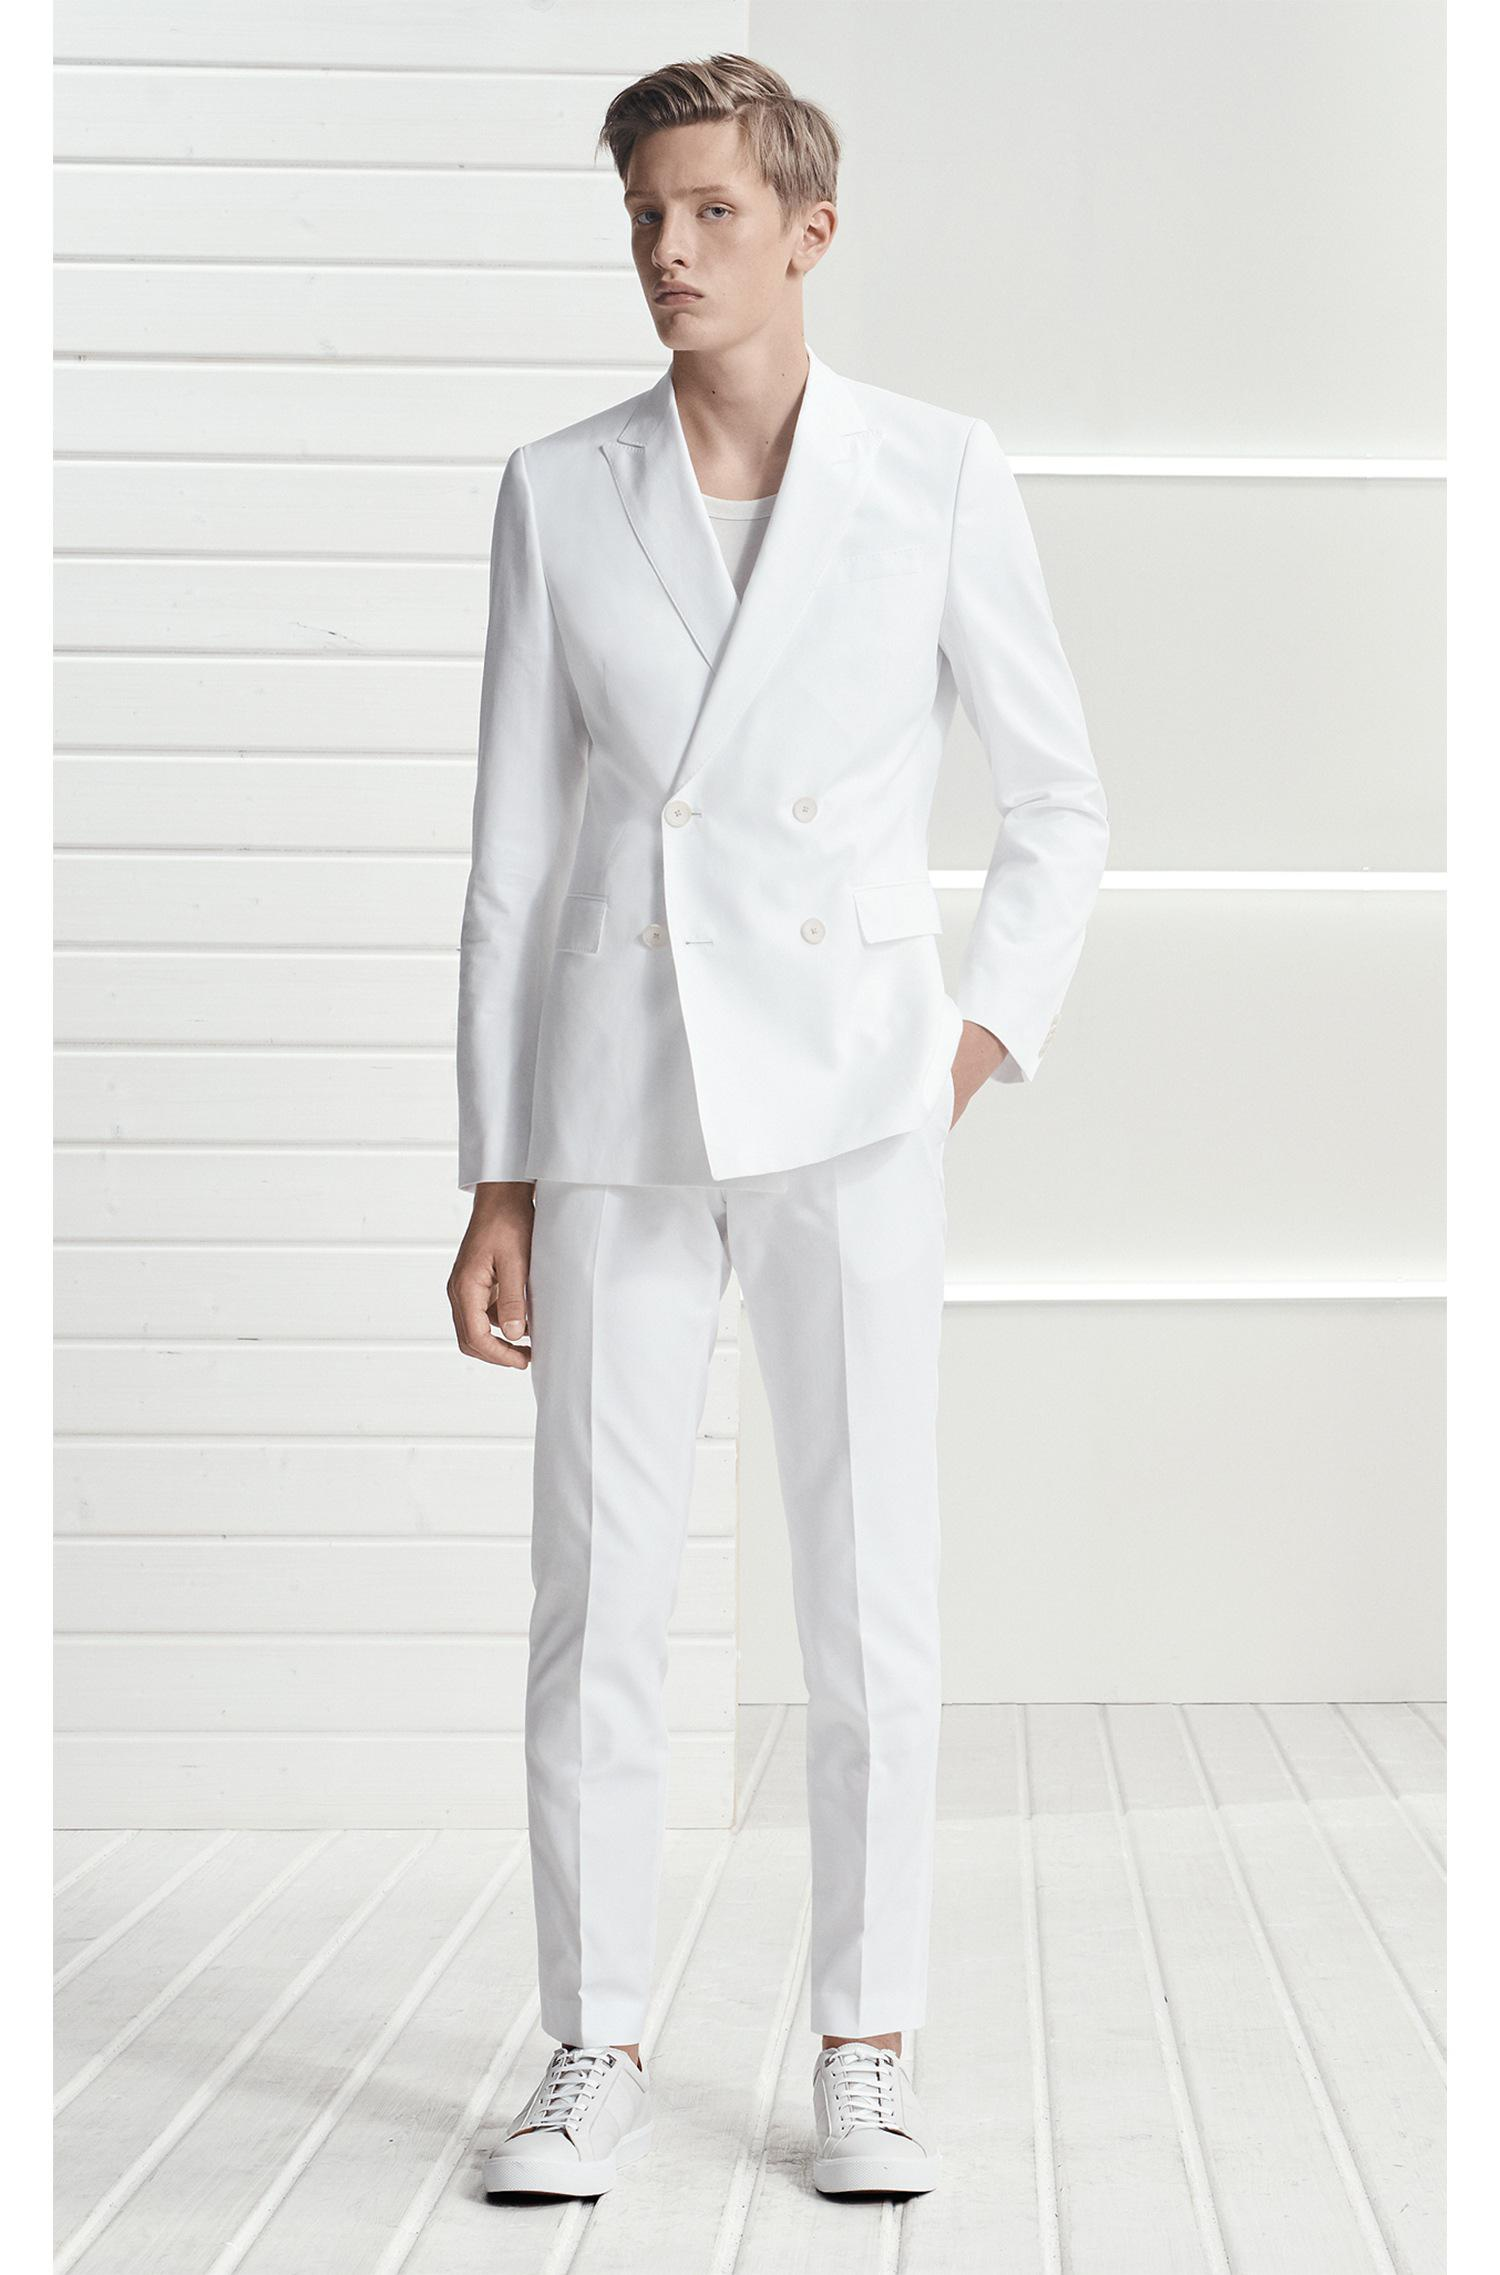 dbd72569 BOSS Italian Cotton Double-breasted Suit, Slim Fit | Nami/ben in ...